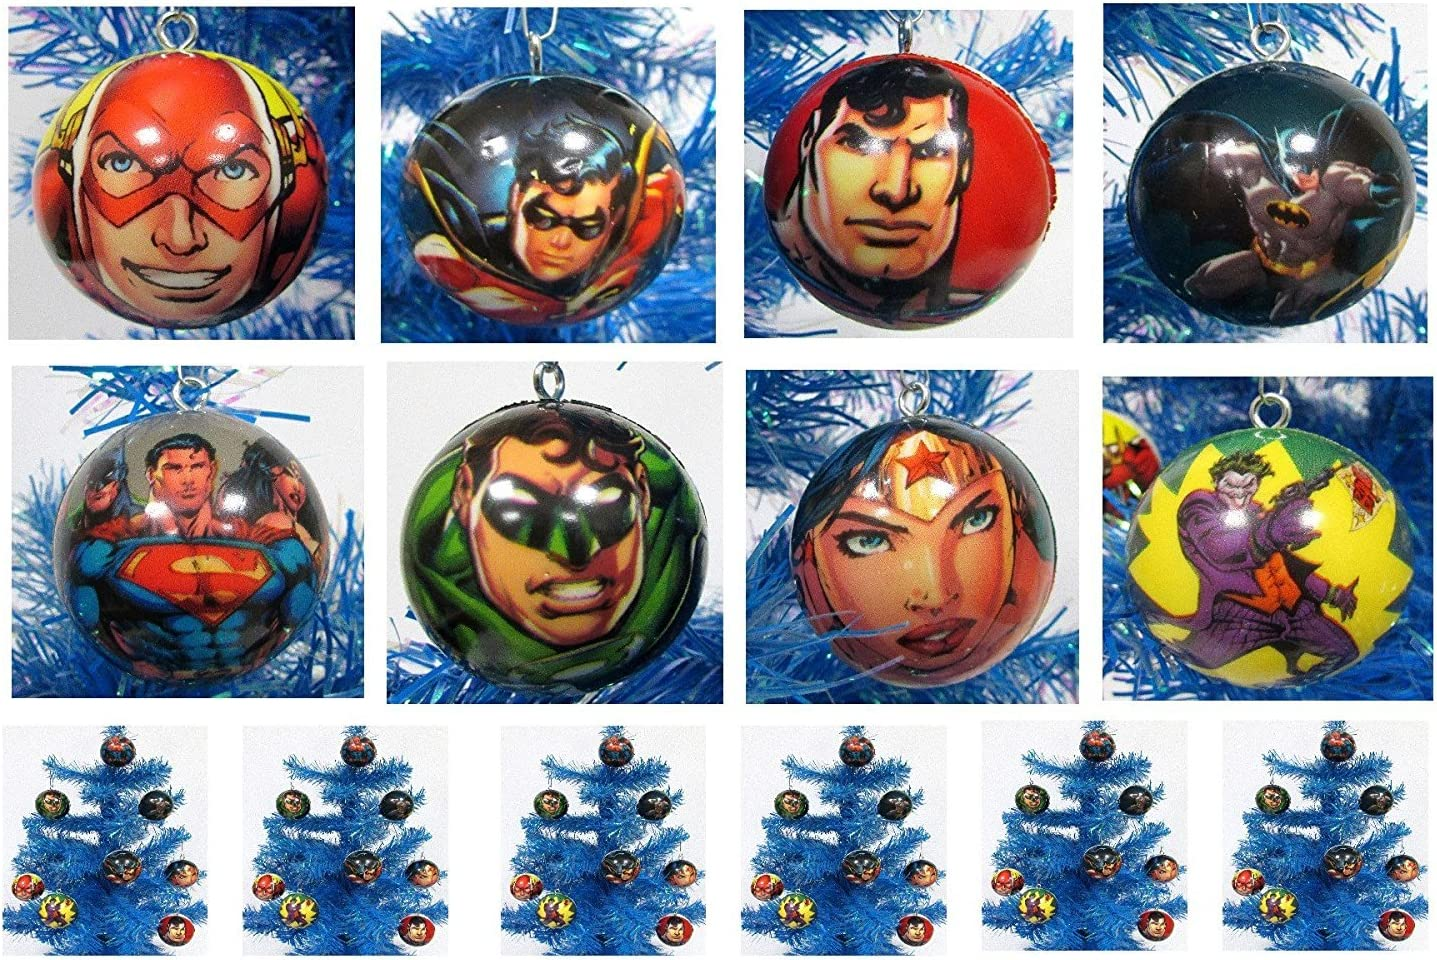 Comic Book Super Hero Holiday Christmas Ornament Set - Unique Shatterproof Foam Design by Holiday Ornaments